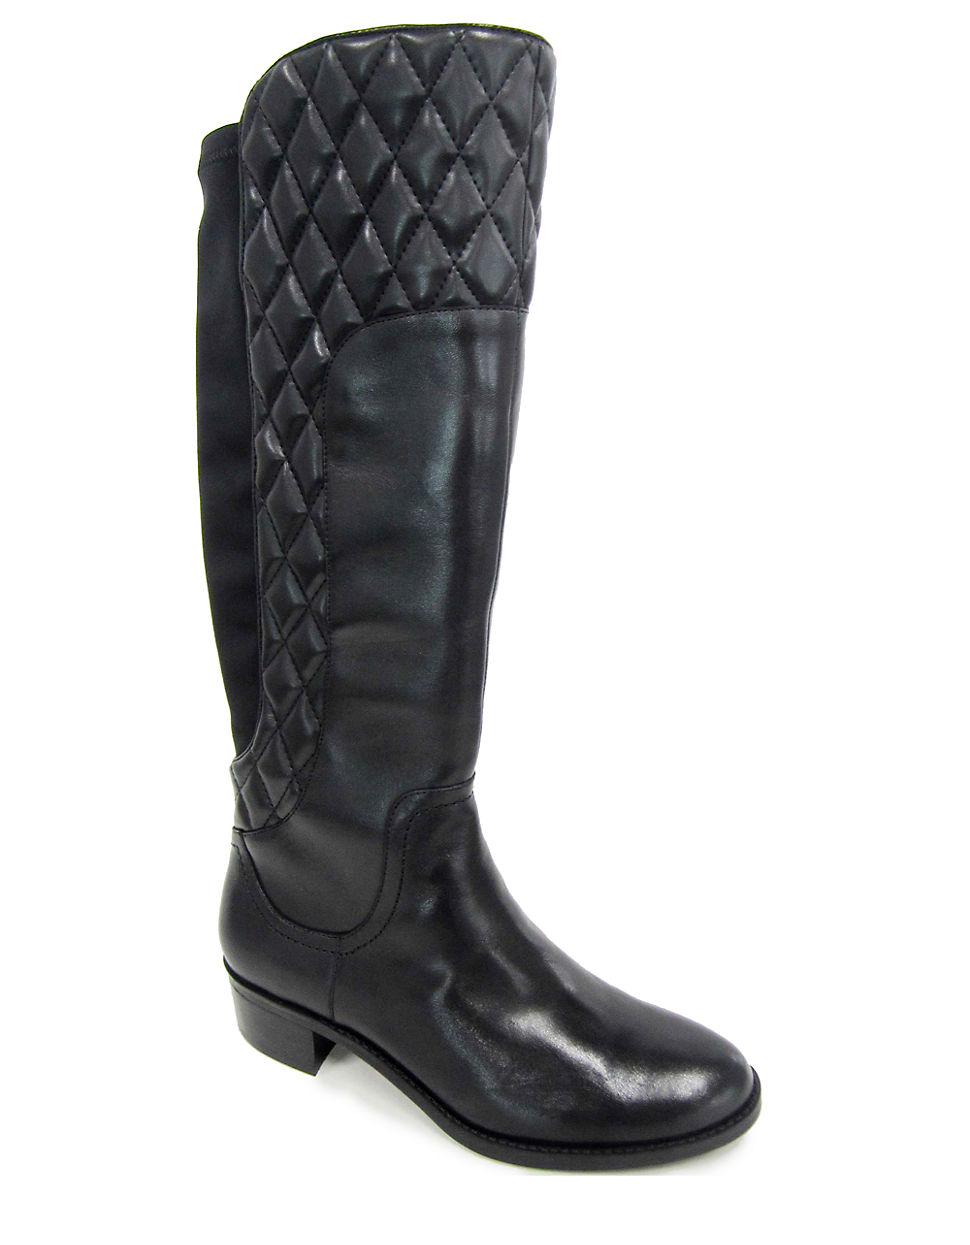 adrienne vittadini keith quilted leather mid calf boots in